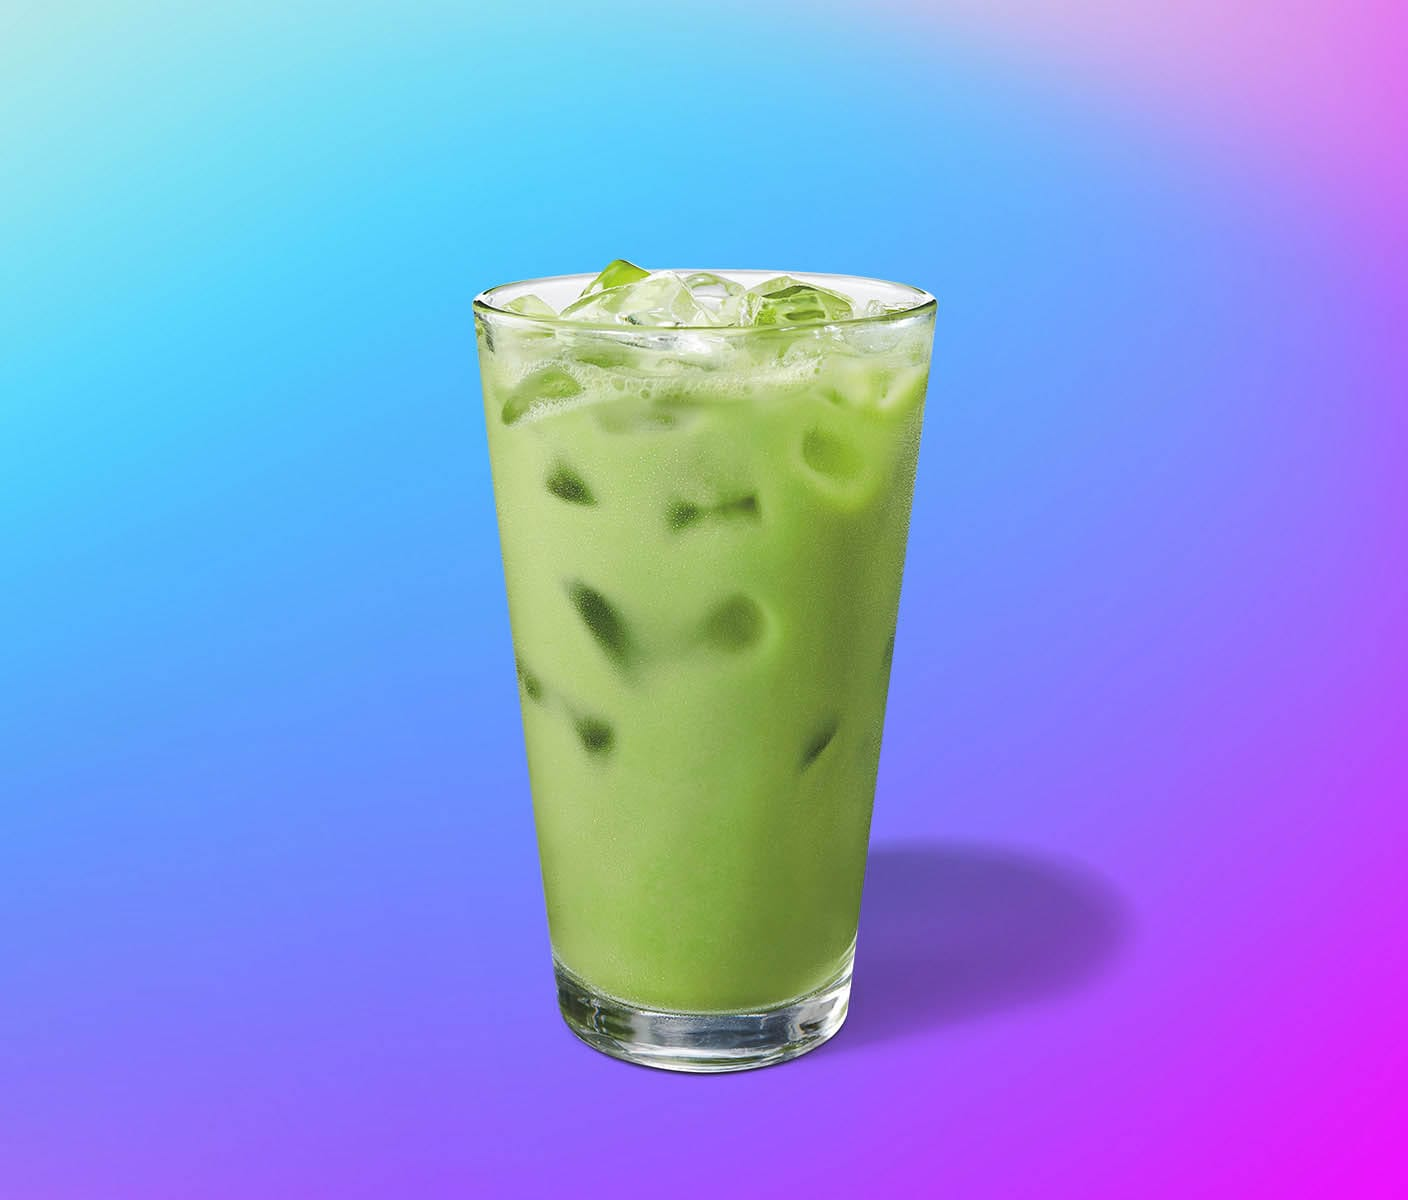 Creamy, brilliant green iced drink in a glass